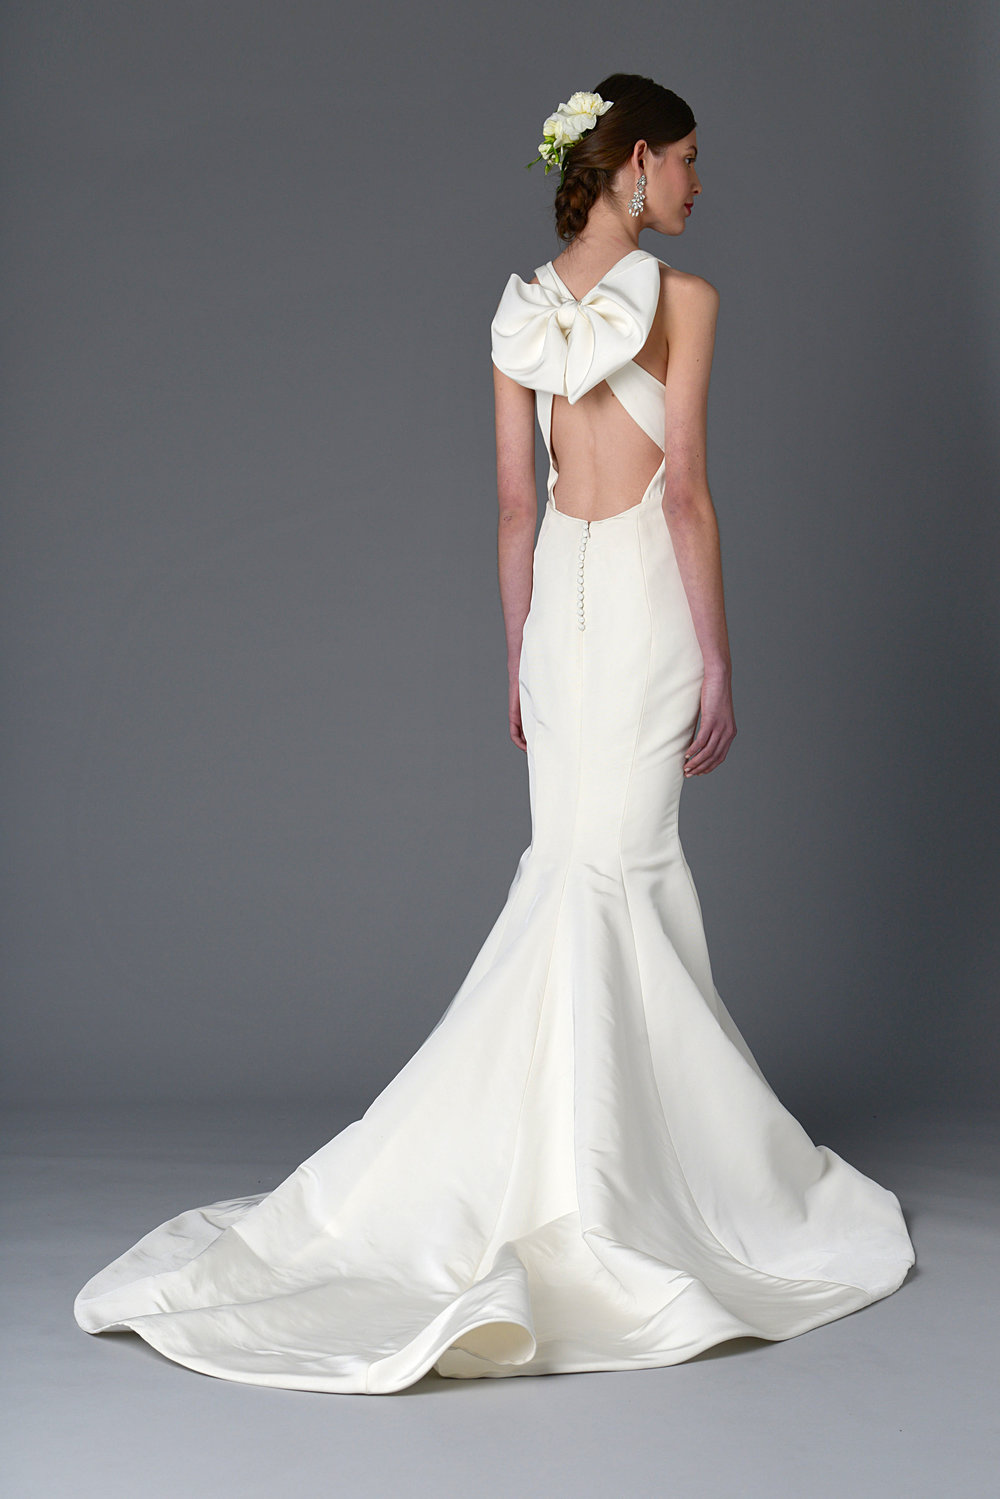 Season: Spring 2017    Gown name: Wisteria    Description: A mermaid, silk faille gown with plunging V-neck and bow detail at back